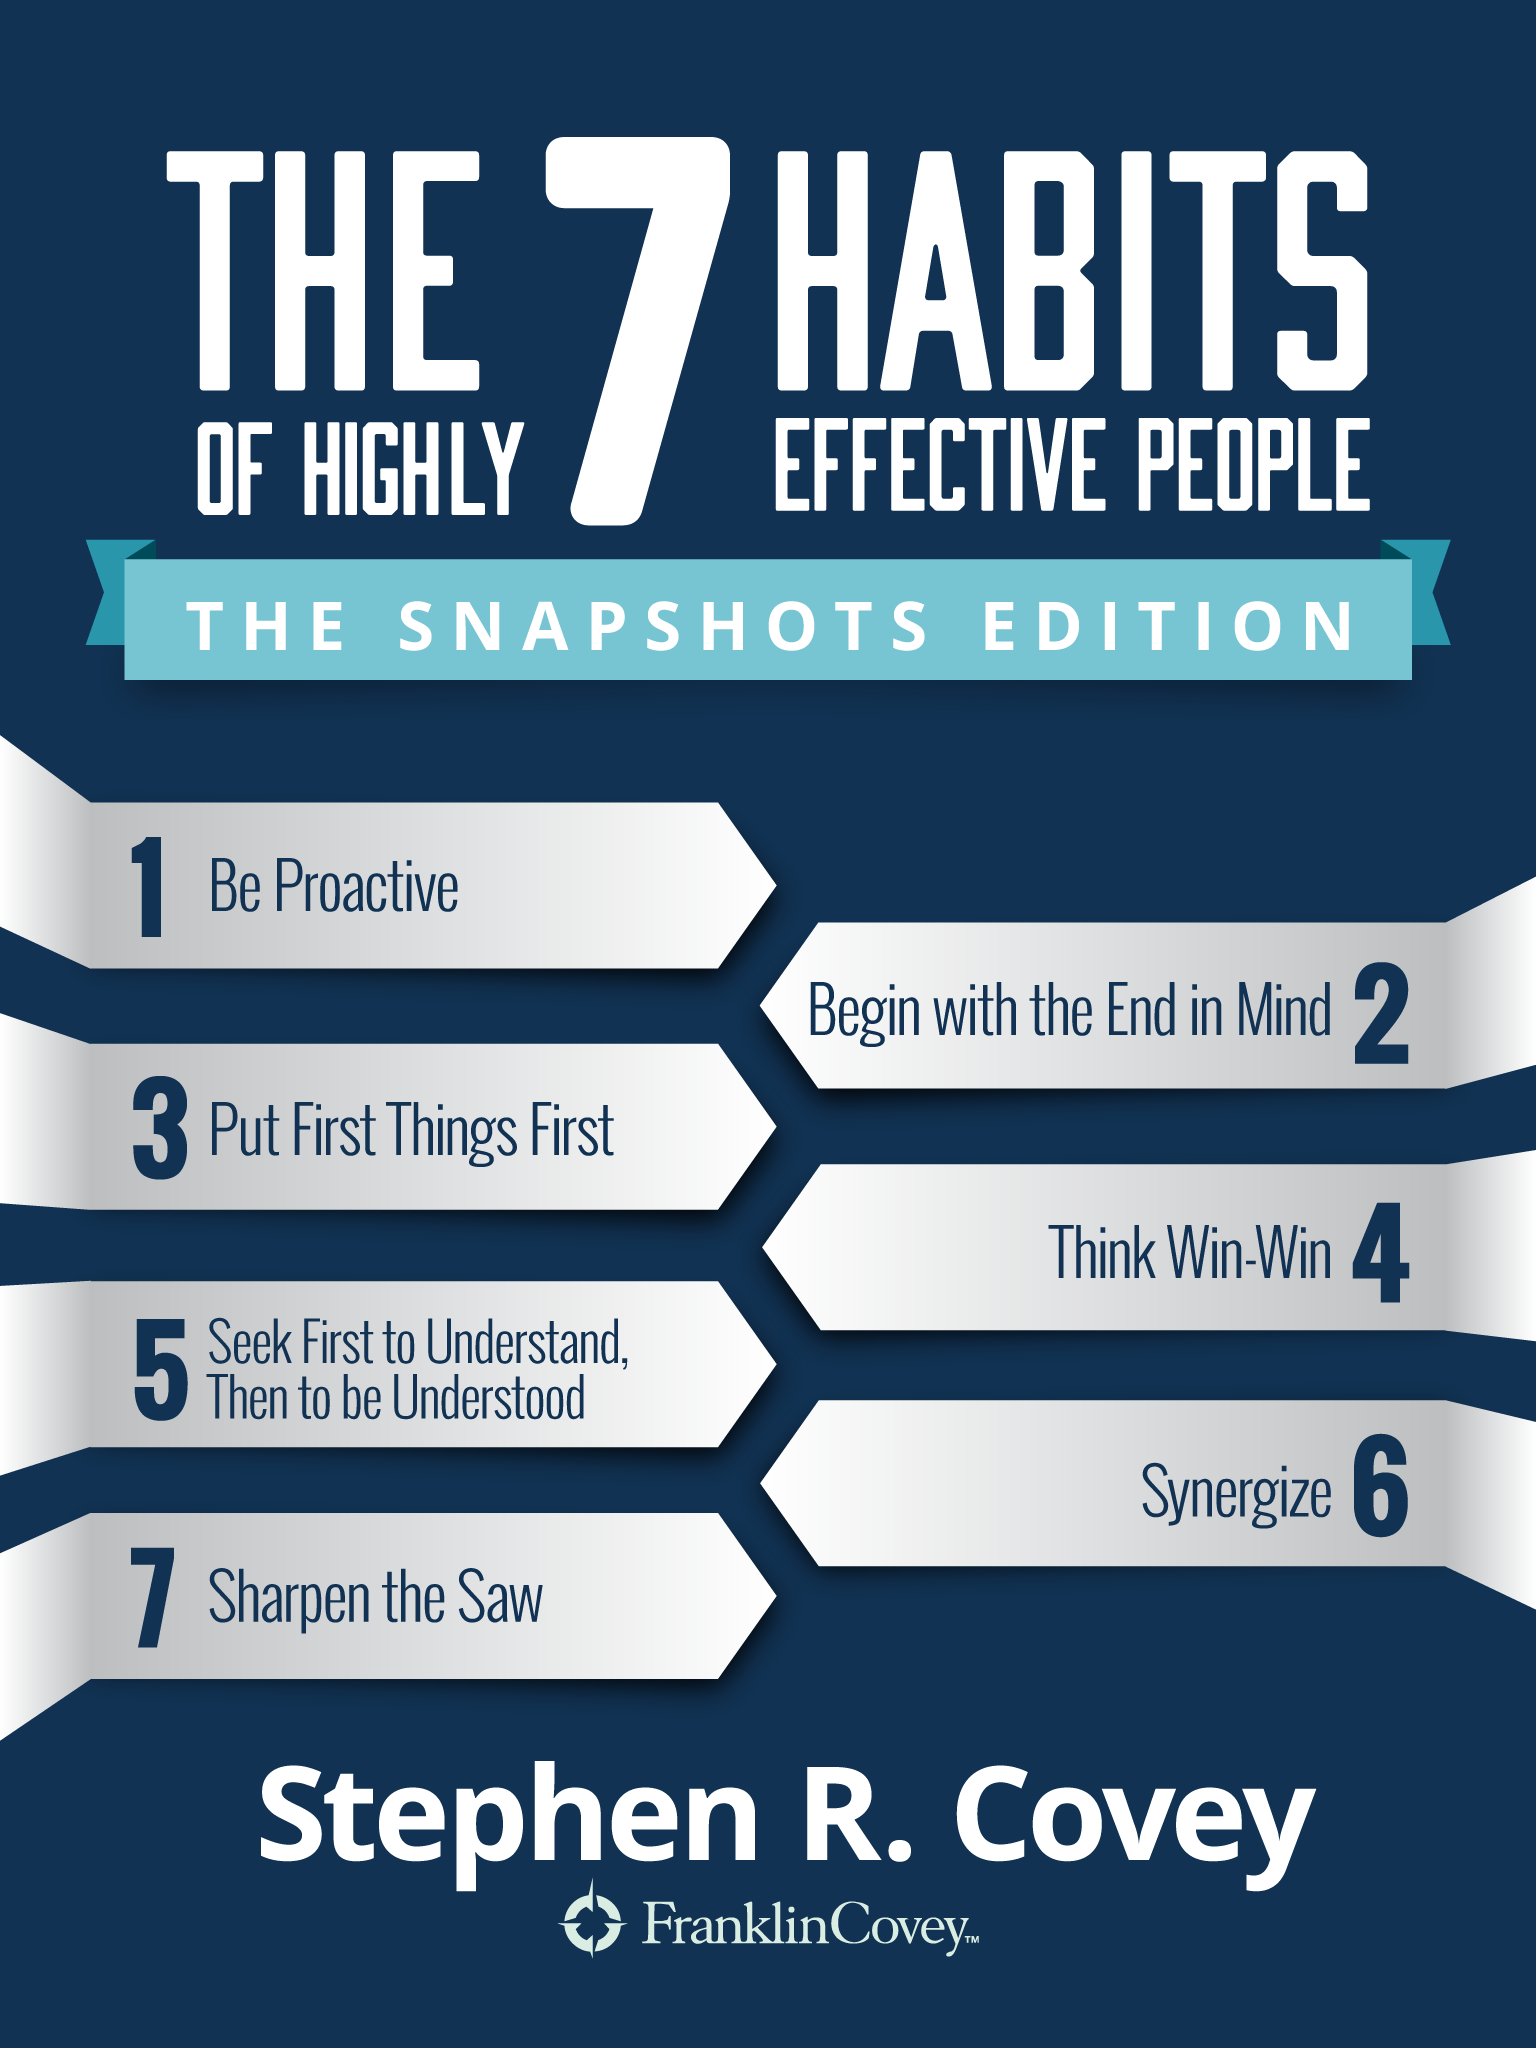 stephen covey calendar template - the 7 habits of highly effective people the snapshots